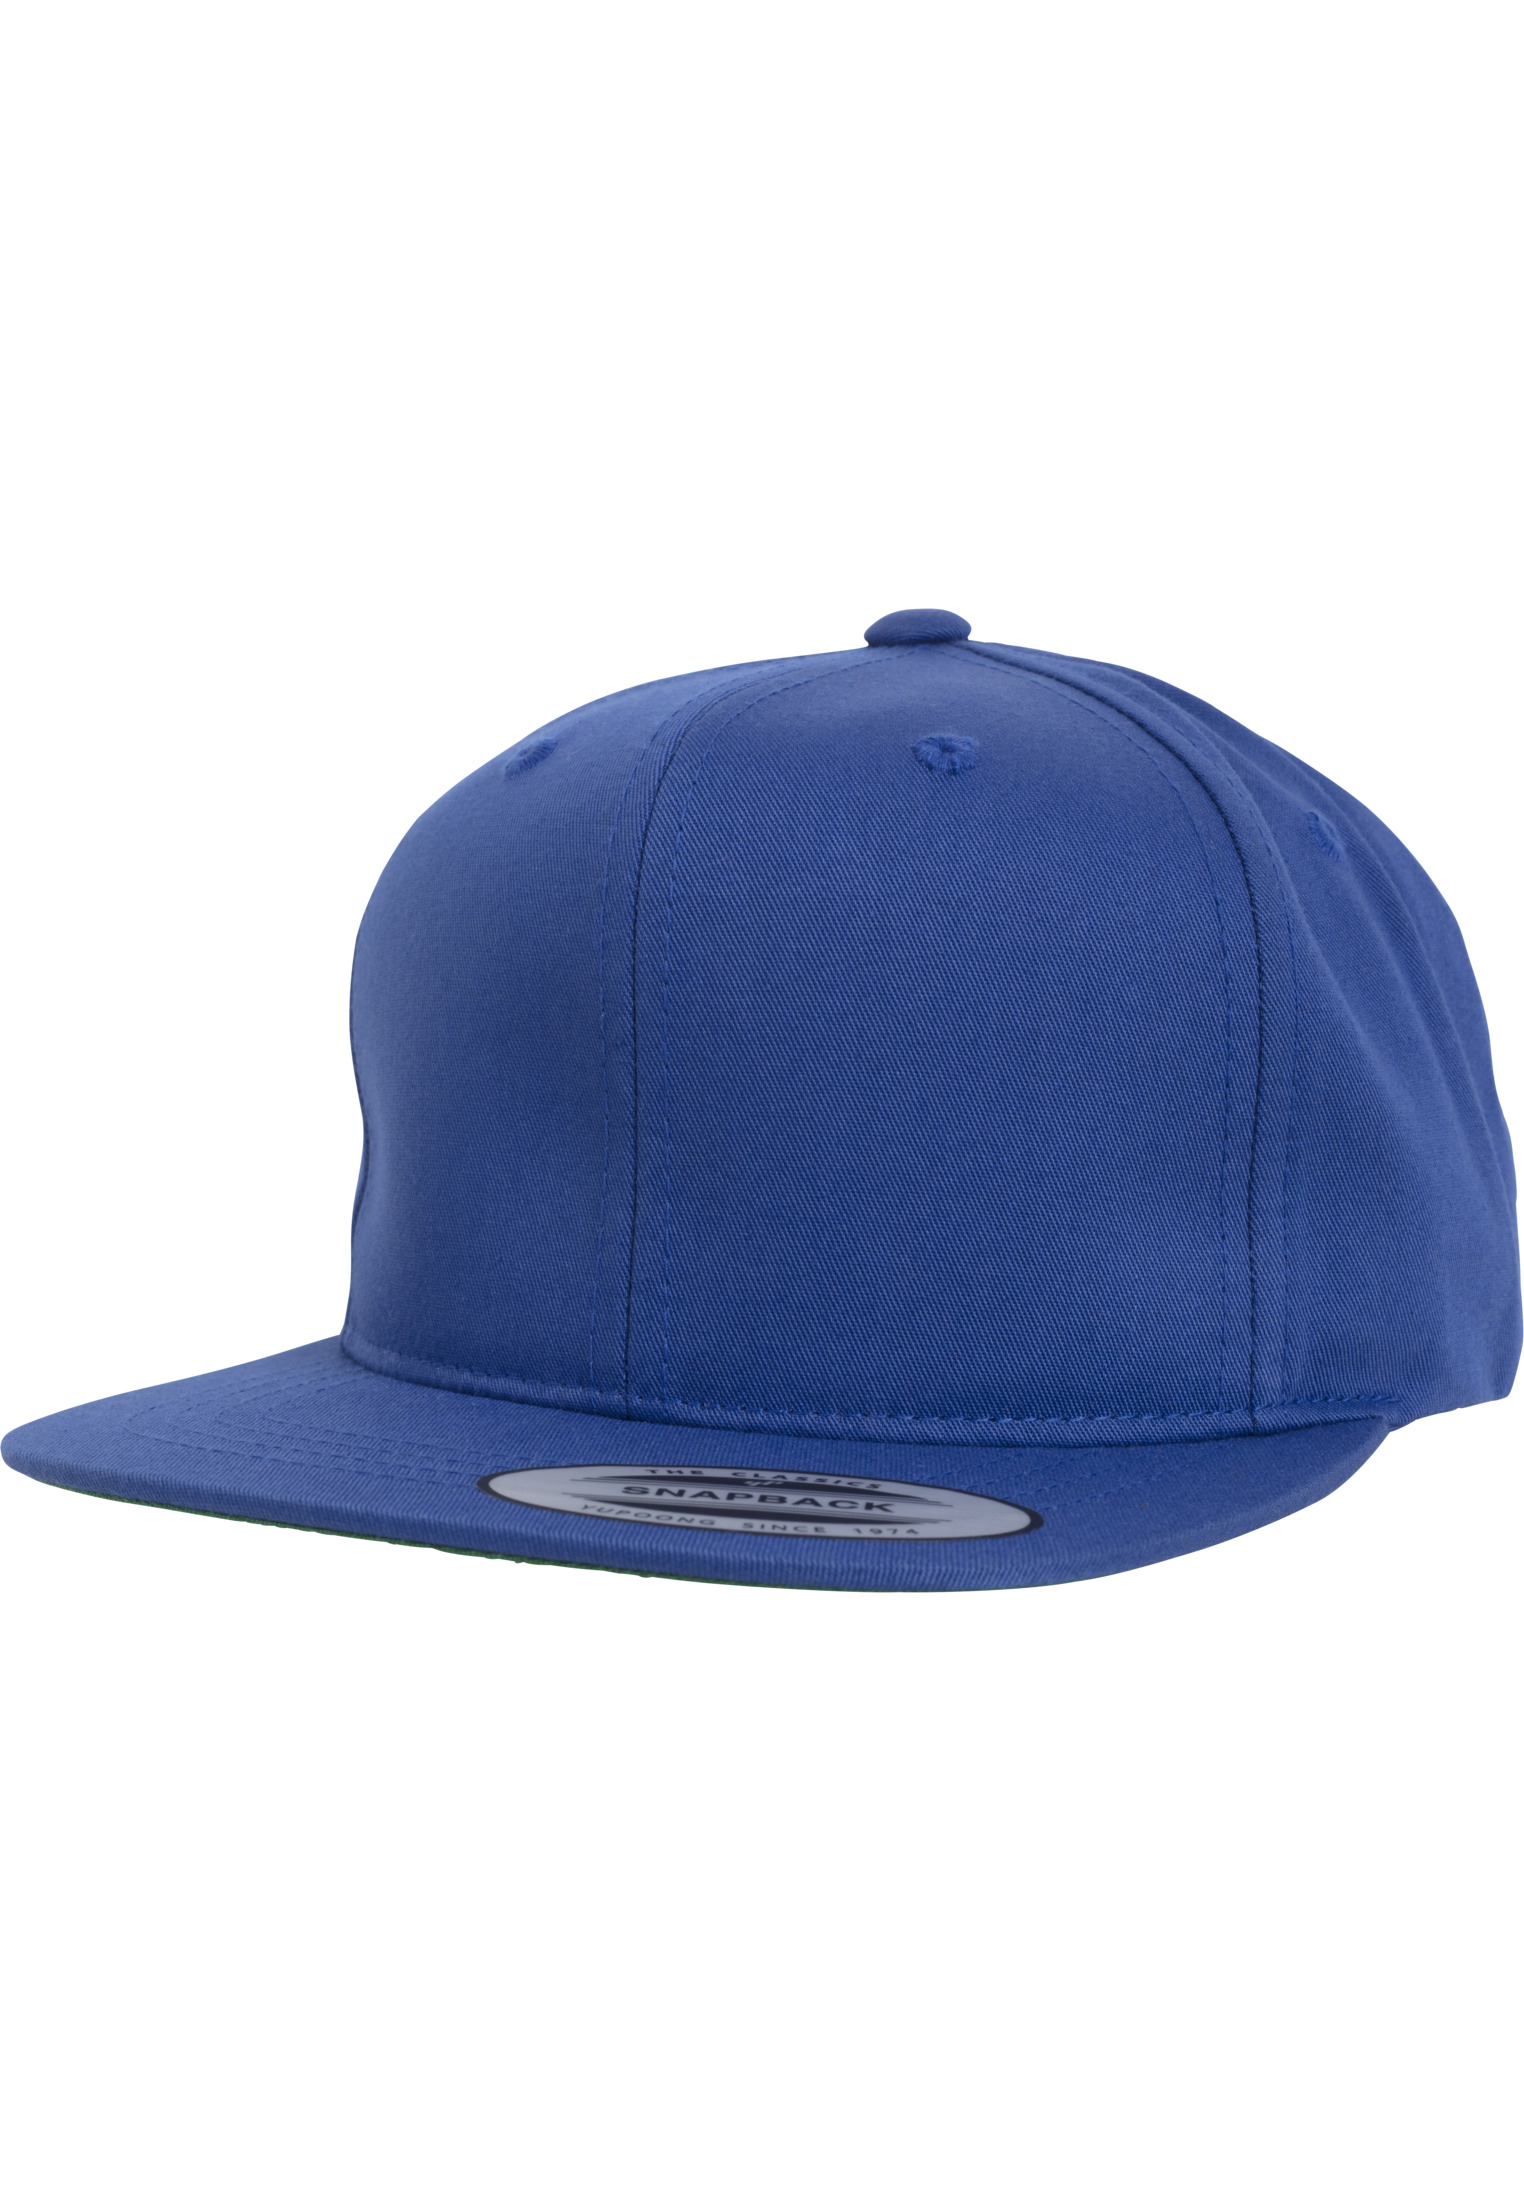 Urban Classic Pro-Style Twill Snapback Youth Cap navy - J (Ages 2-6)